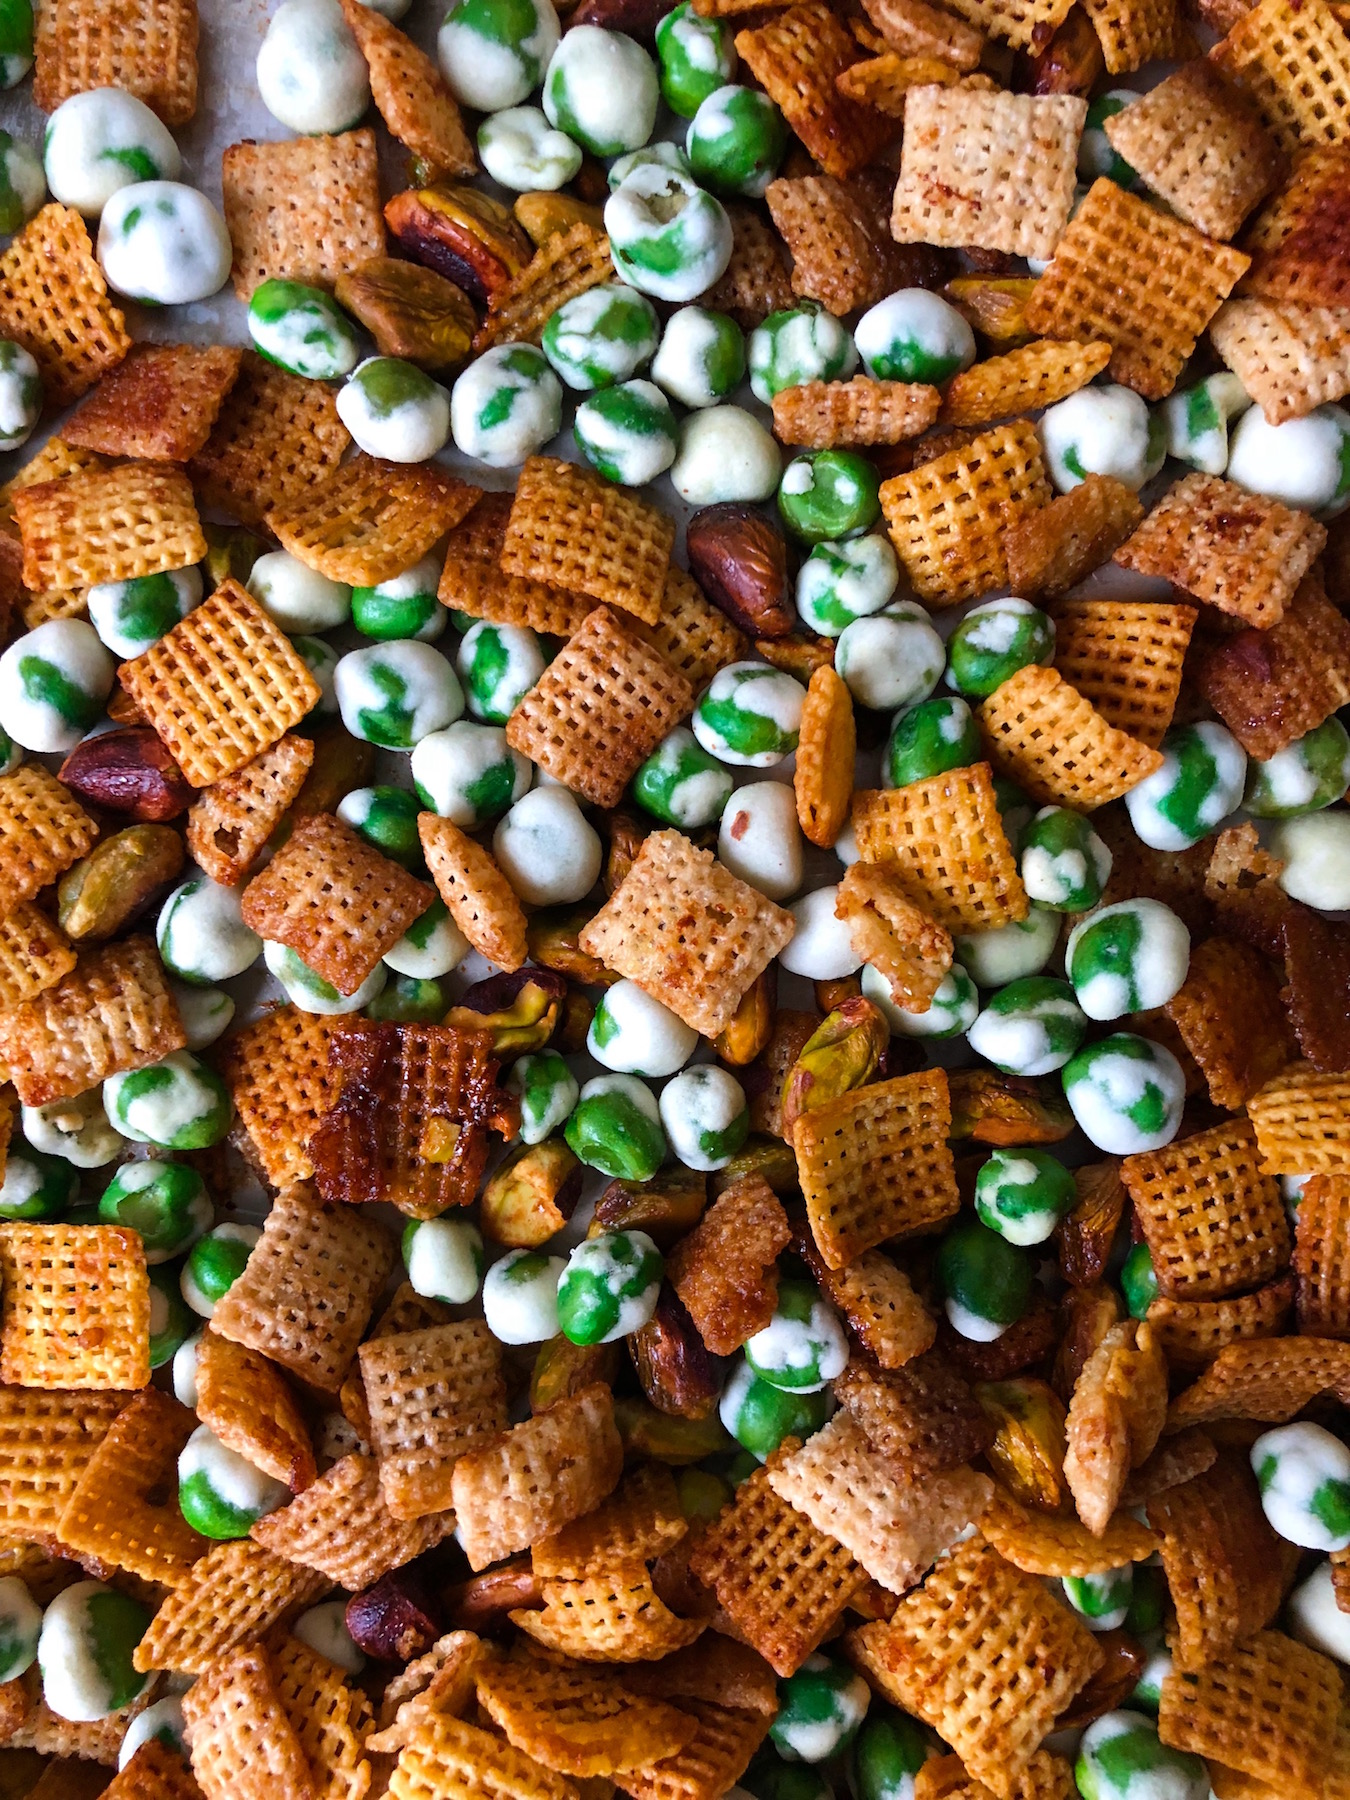 St. Patrick's Day Chex Mix (Pot of Gold Chex Mix)